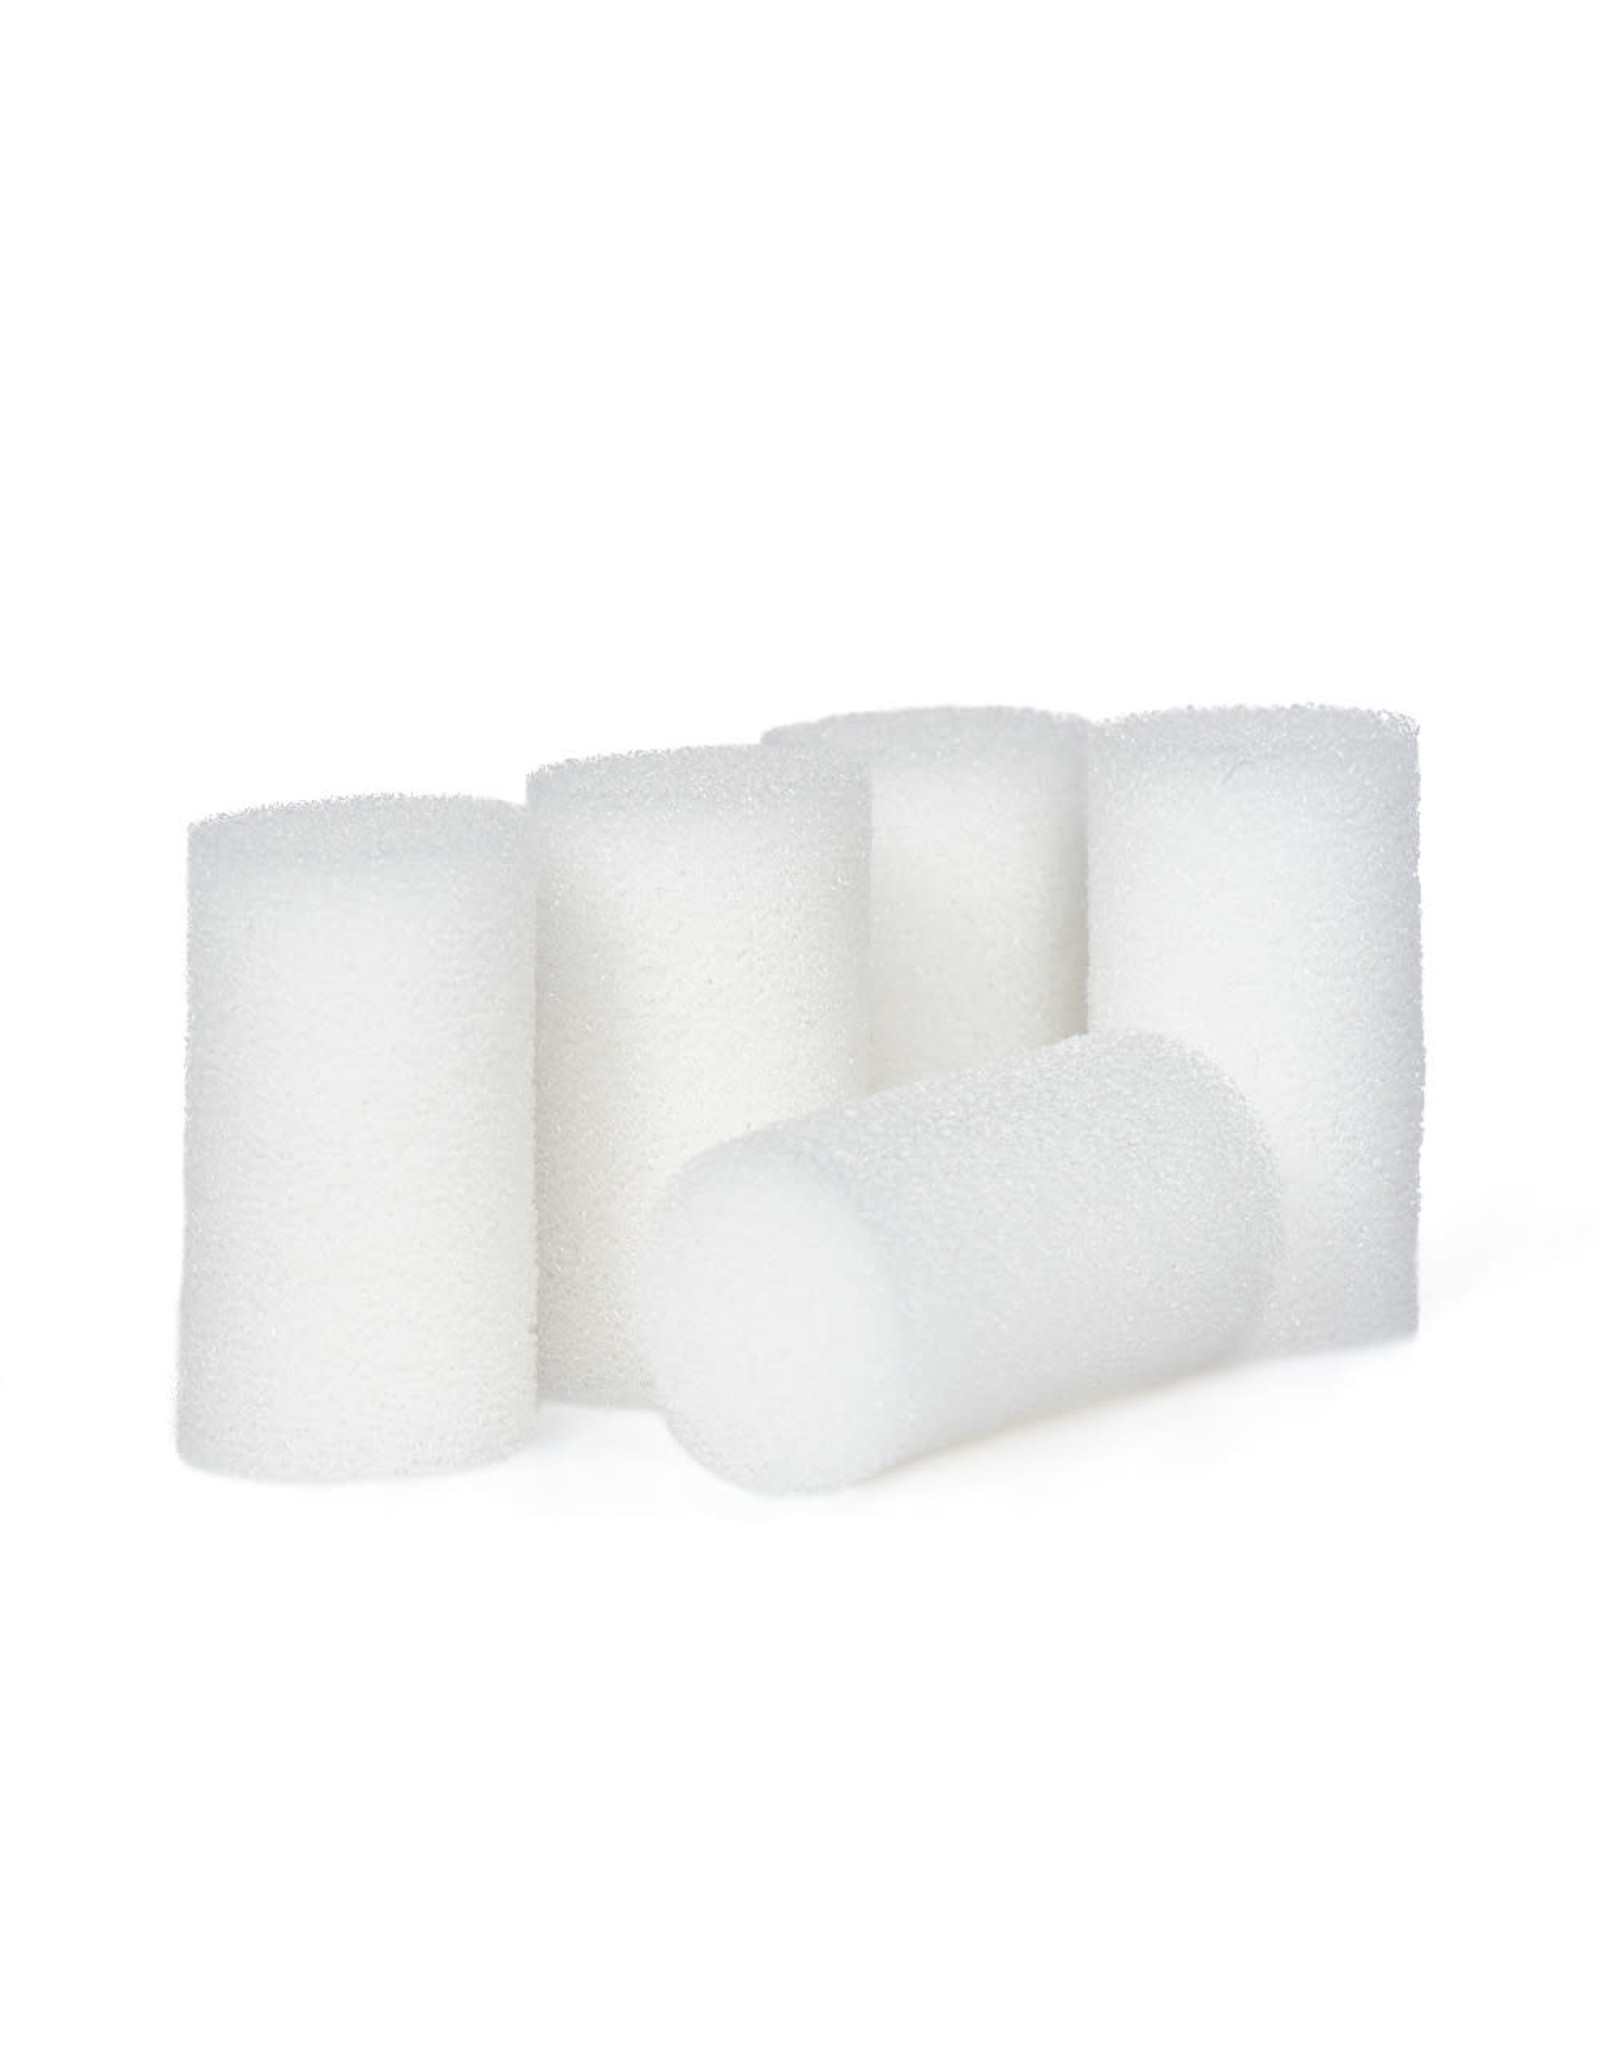 Degritter Degritter Replacement Filters (Set of 5)